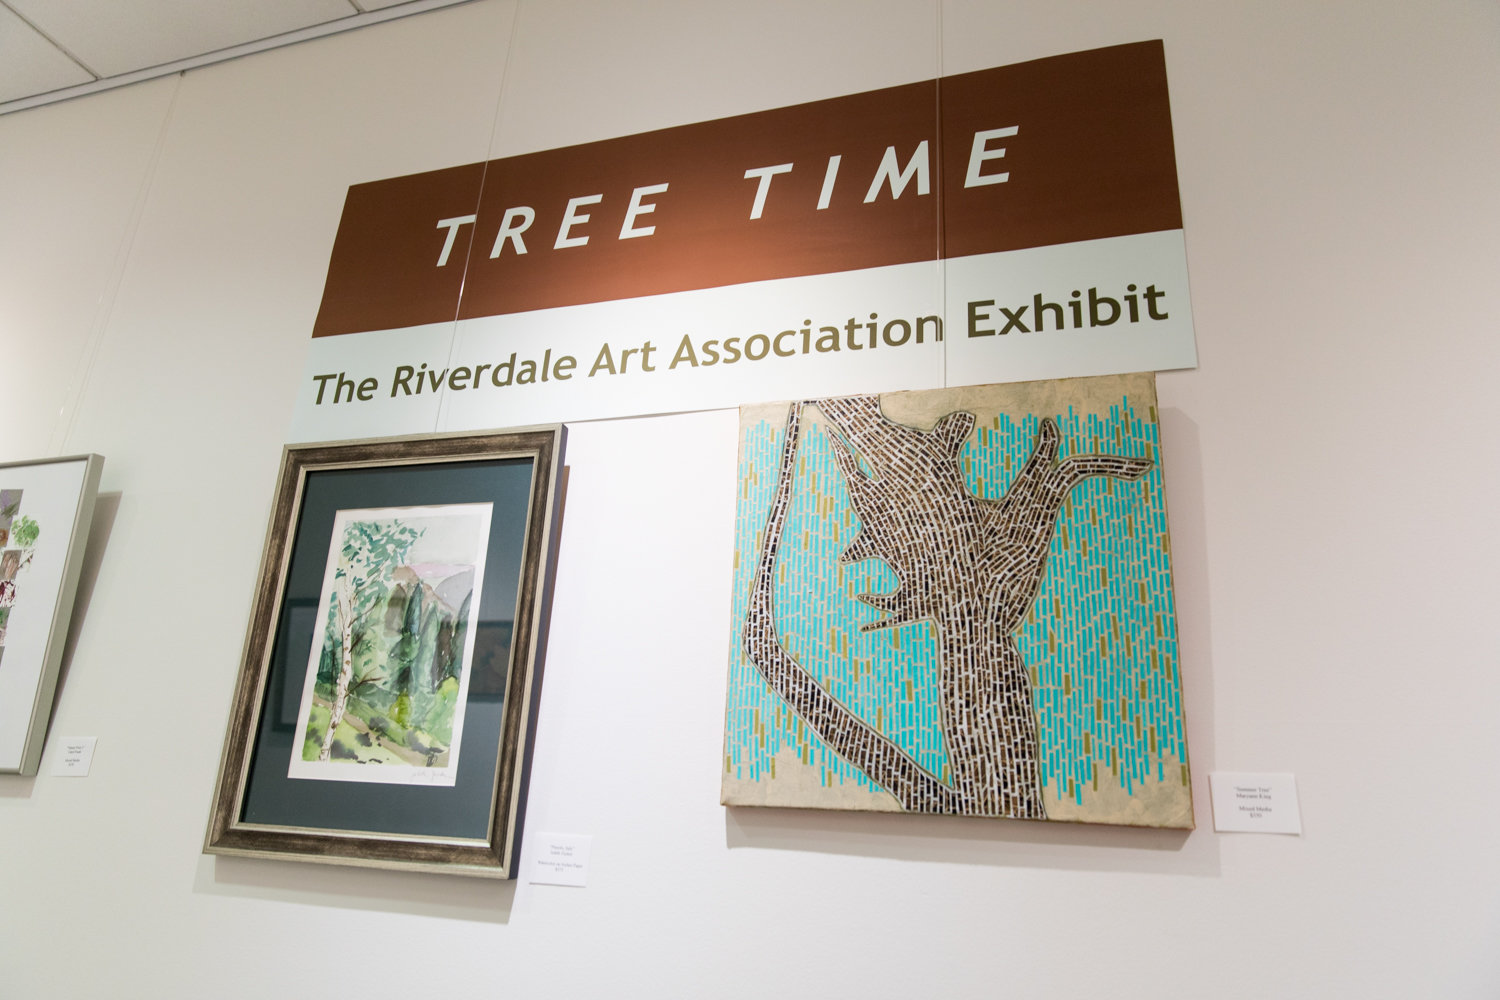 The Riverdale Y's new exhibition 'Tree Time' showcases tree-themed artworks by members of the Riverdale Art Association. It is on display through Nov. 3.